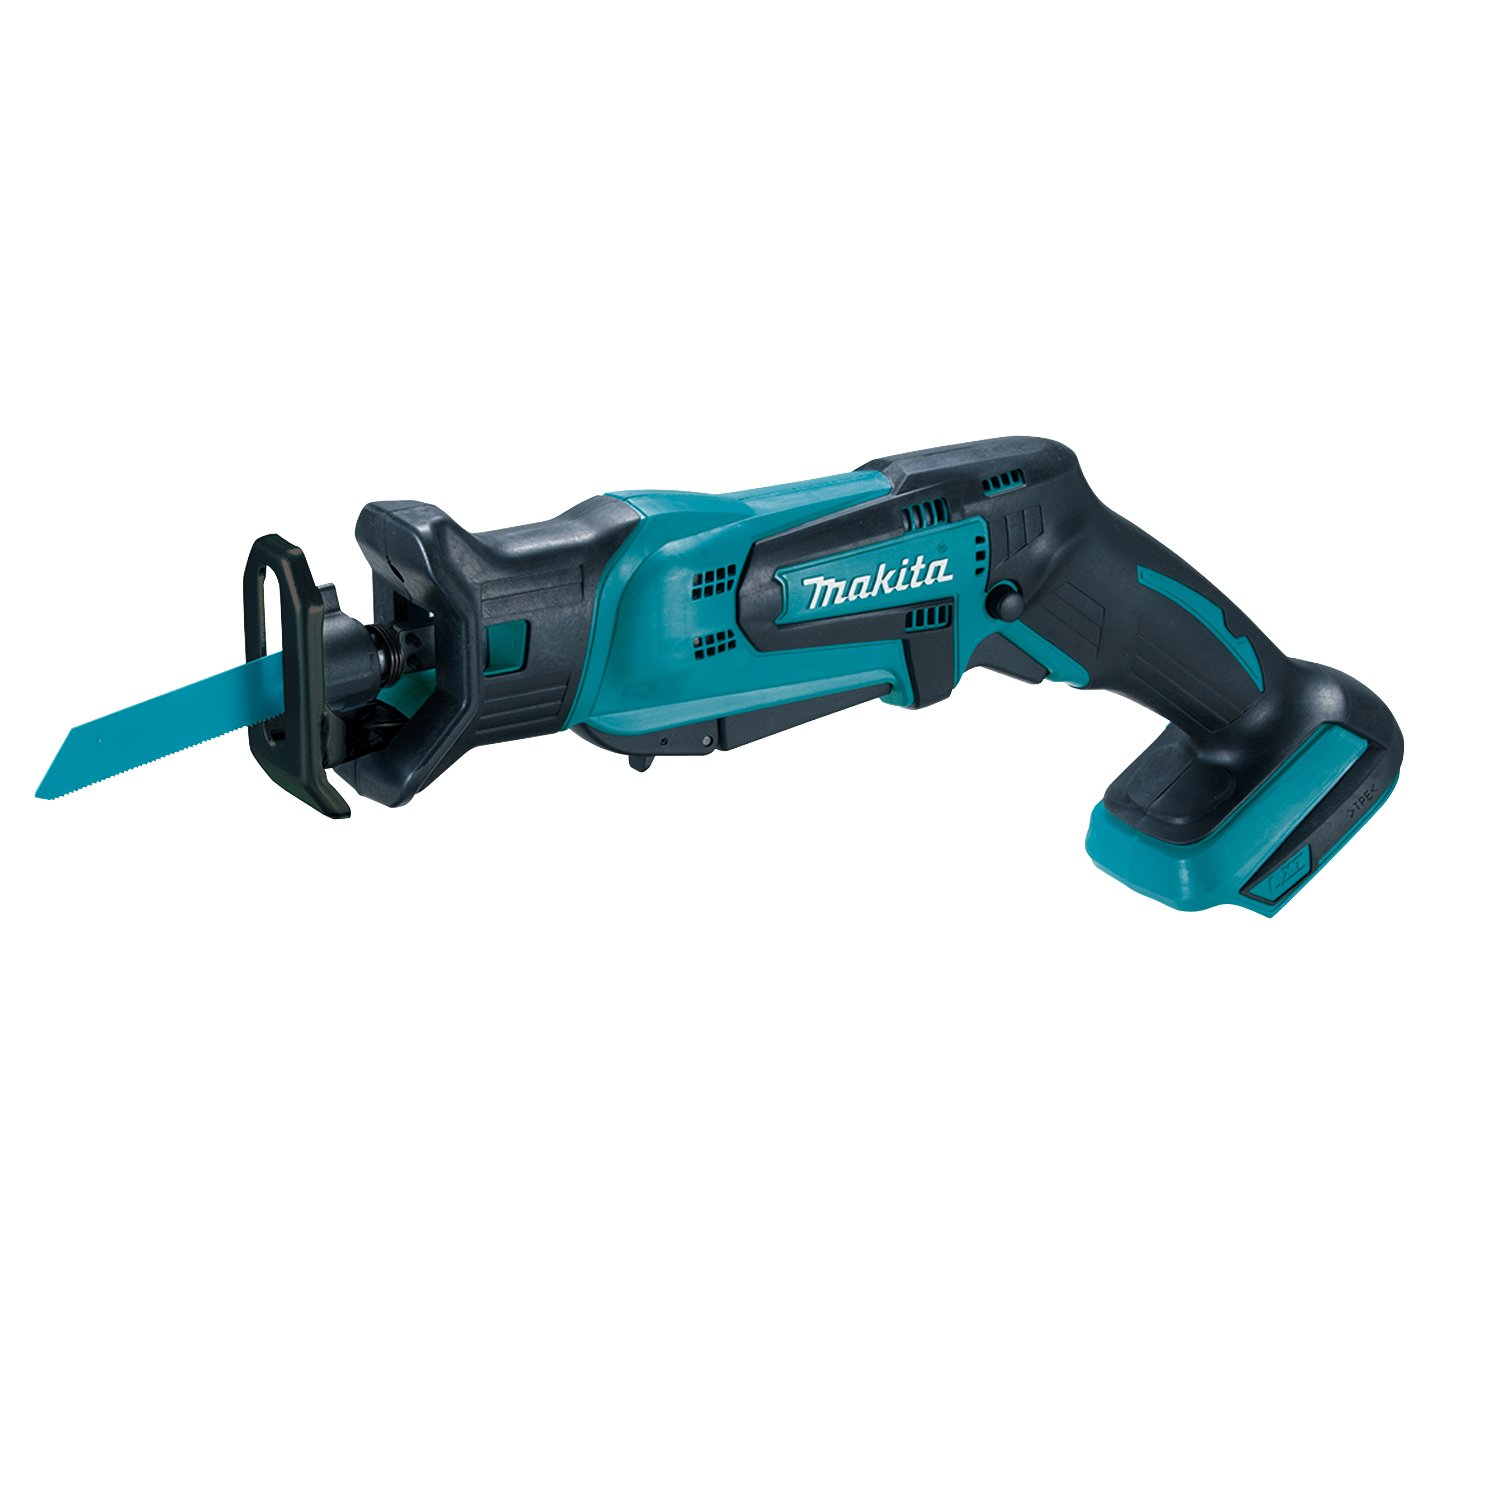 Makita XRJ01Z Reciprocating Saw Reviews